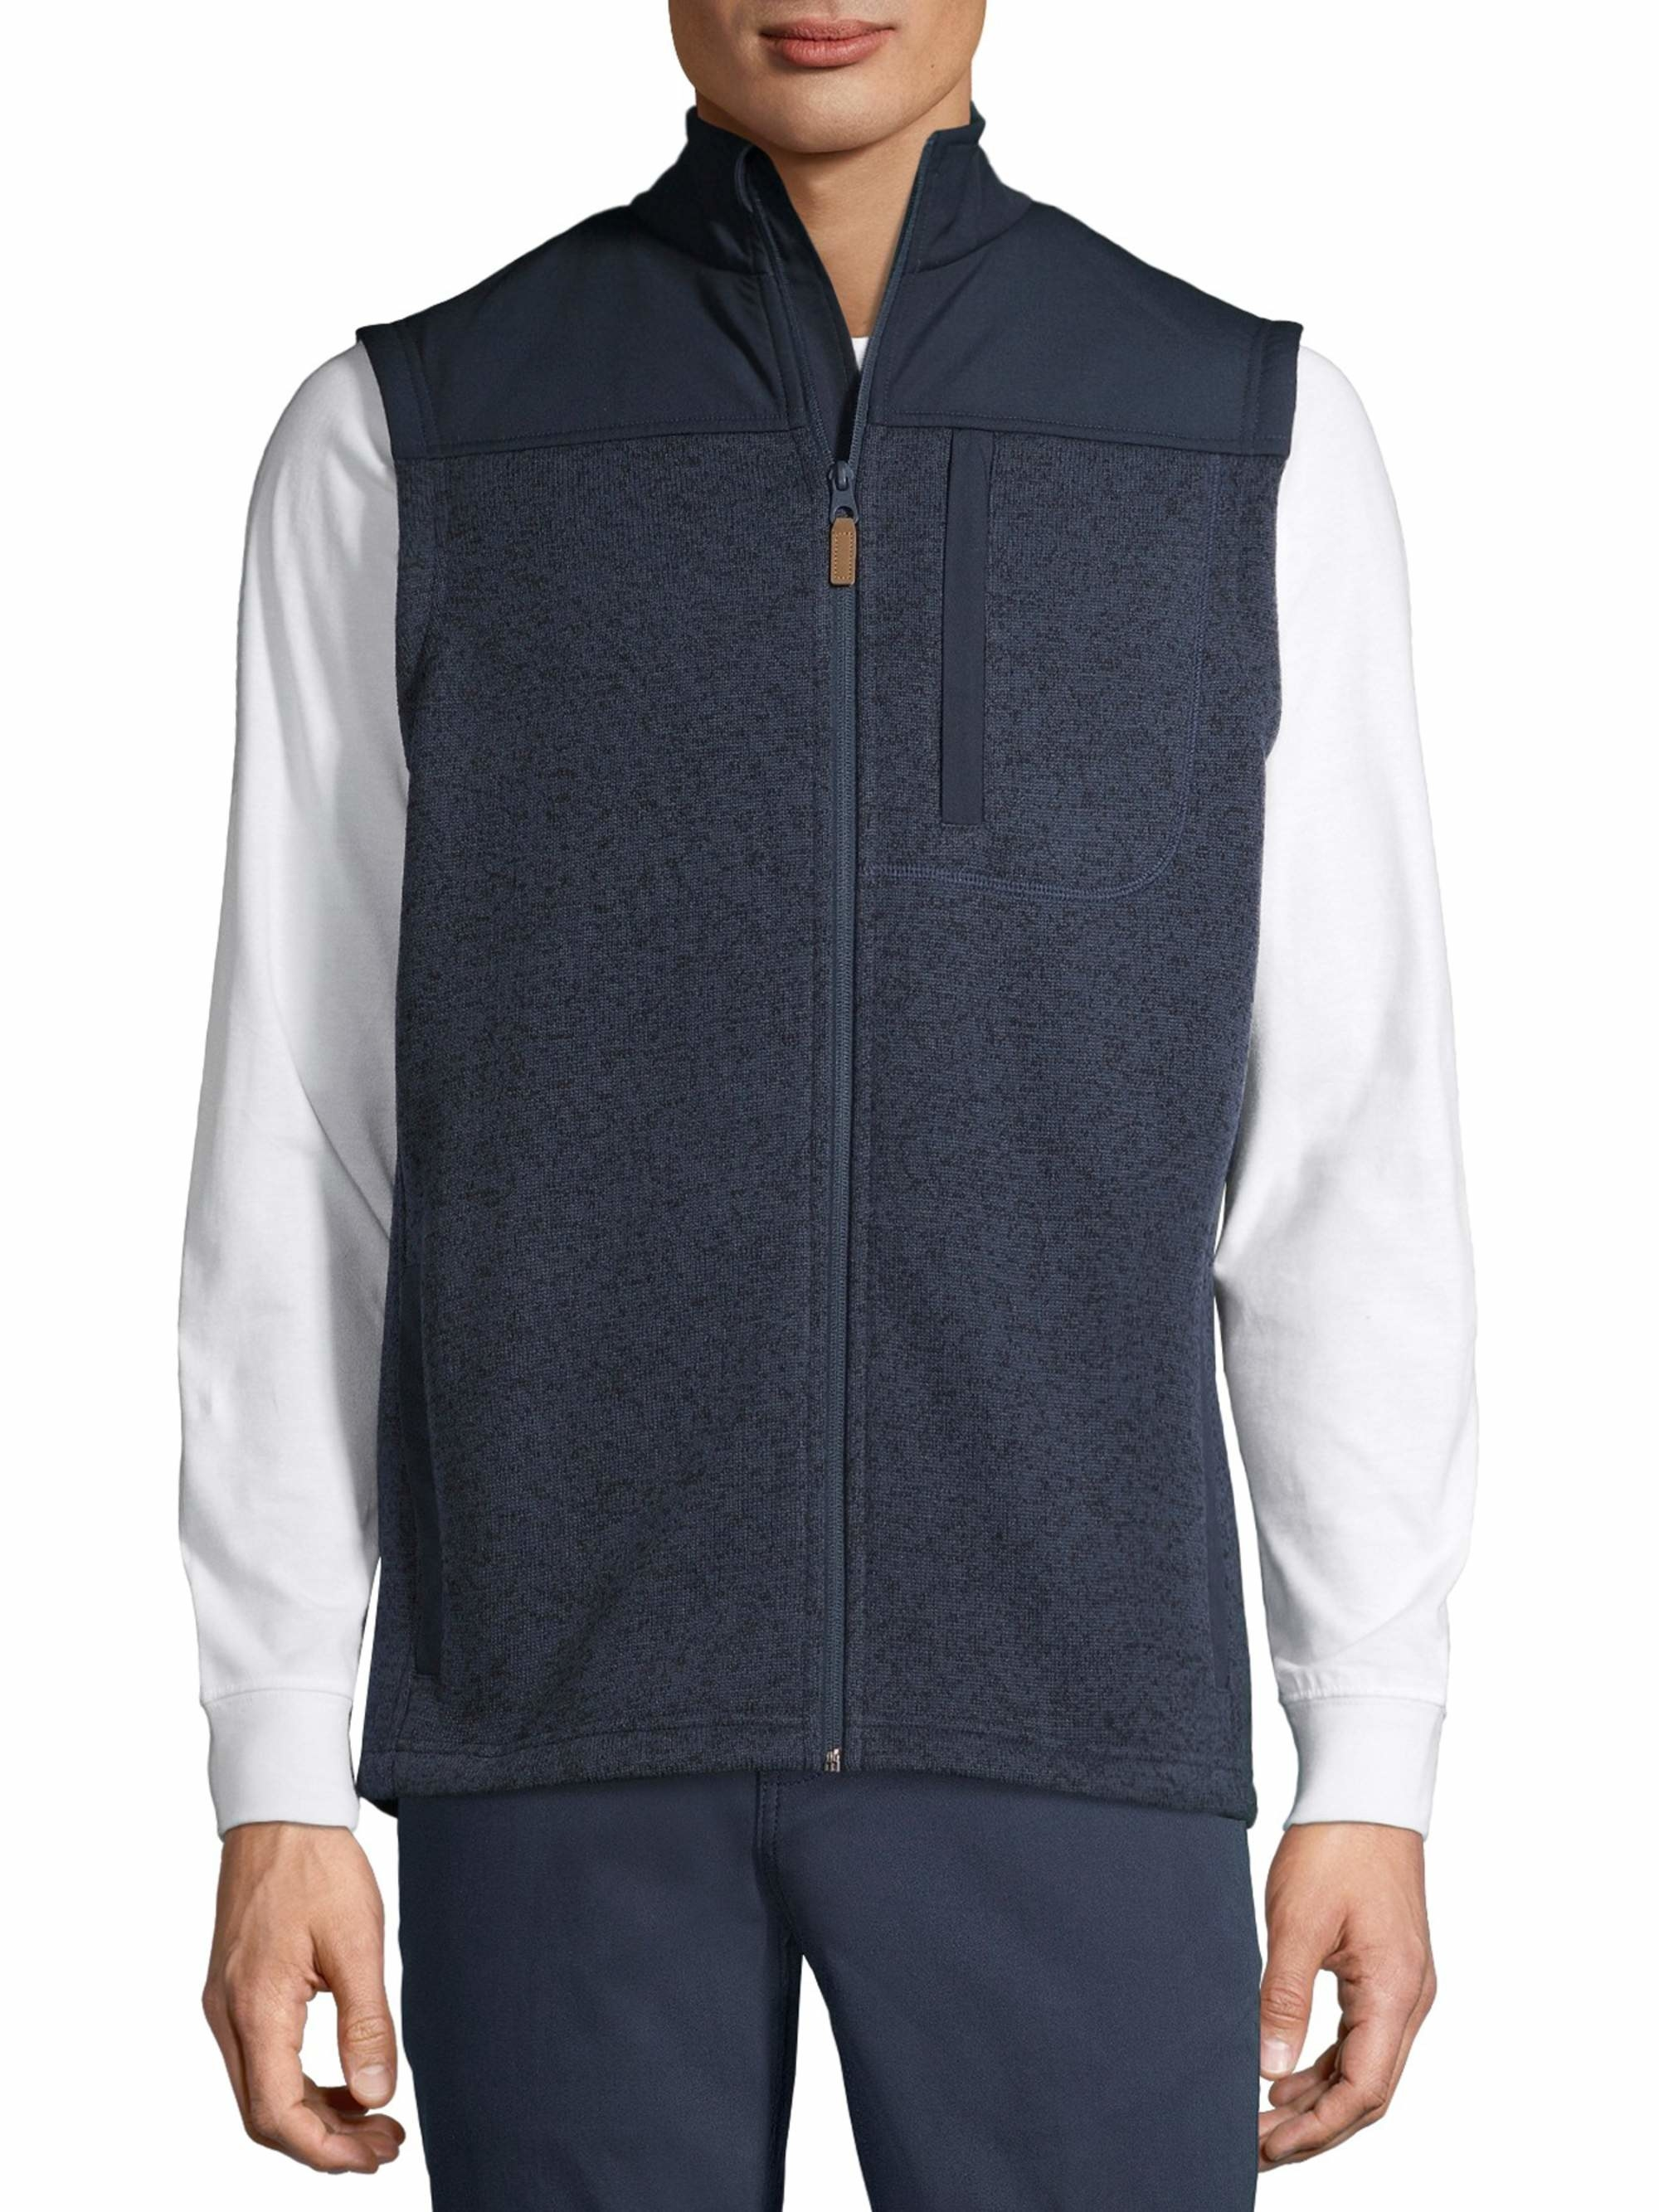 person wearing a blue sweater vest over a white longsleeve shirt